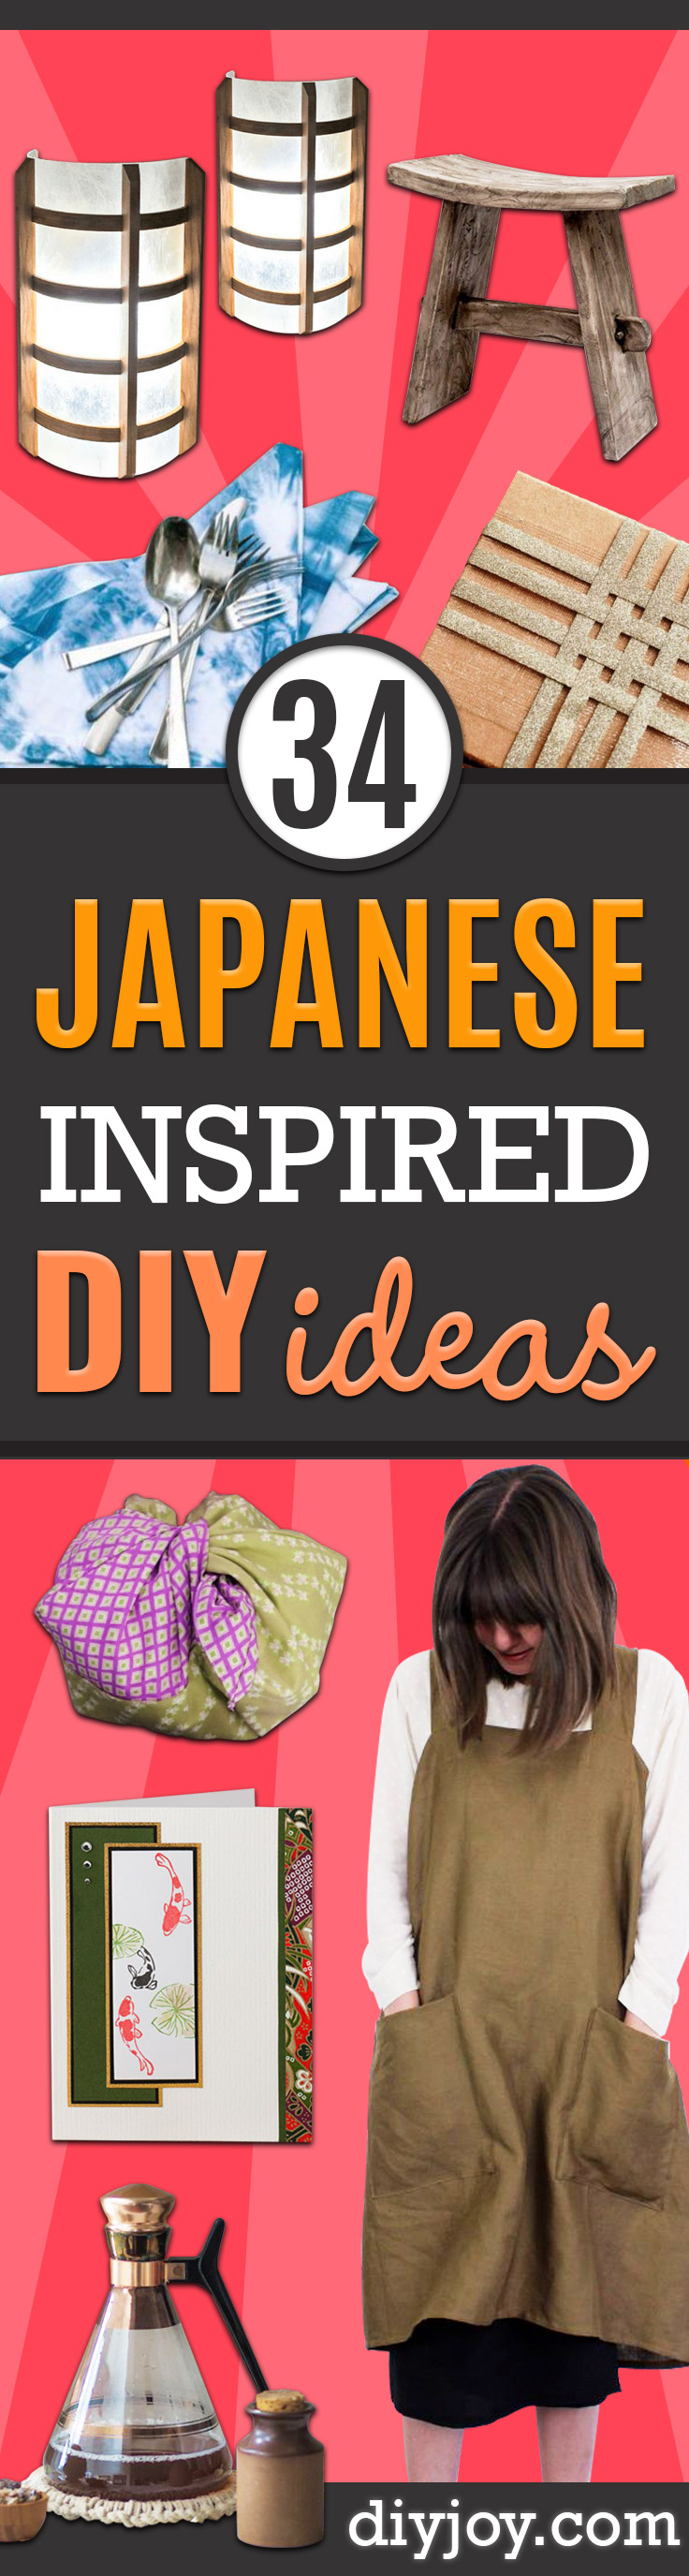 Japanese DIY Ideas and Crafts Inspired by Japan- Boxes, Home Decorations, Room Decor, Fashion, Jewelry Tutorials, Wall Art and Gifts